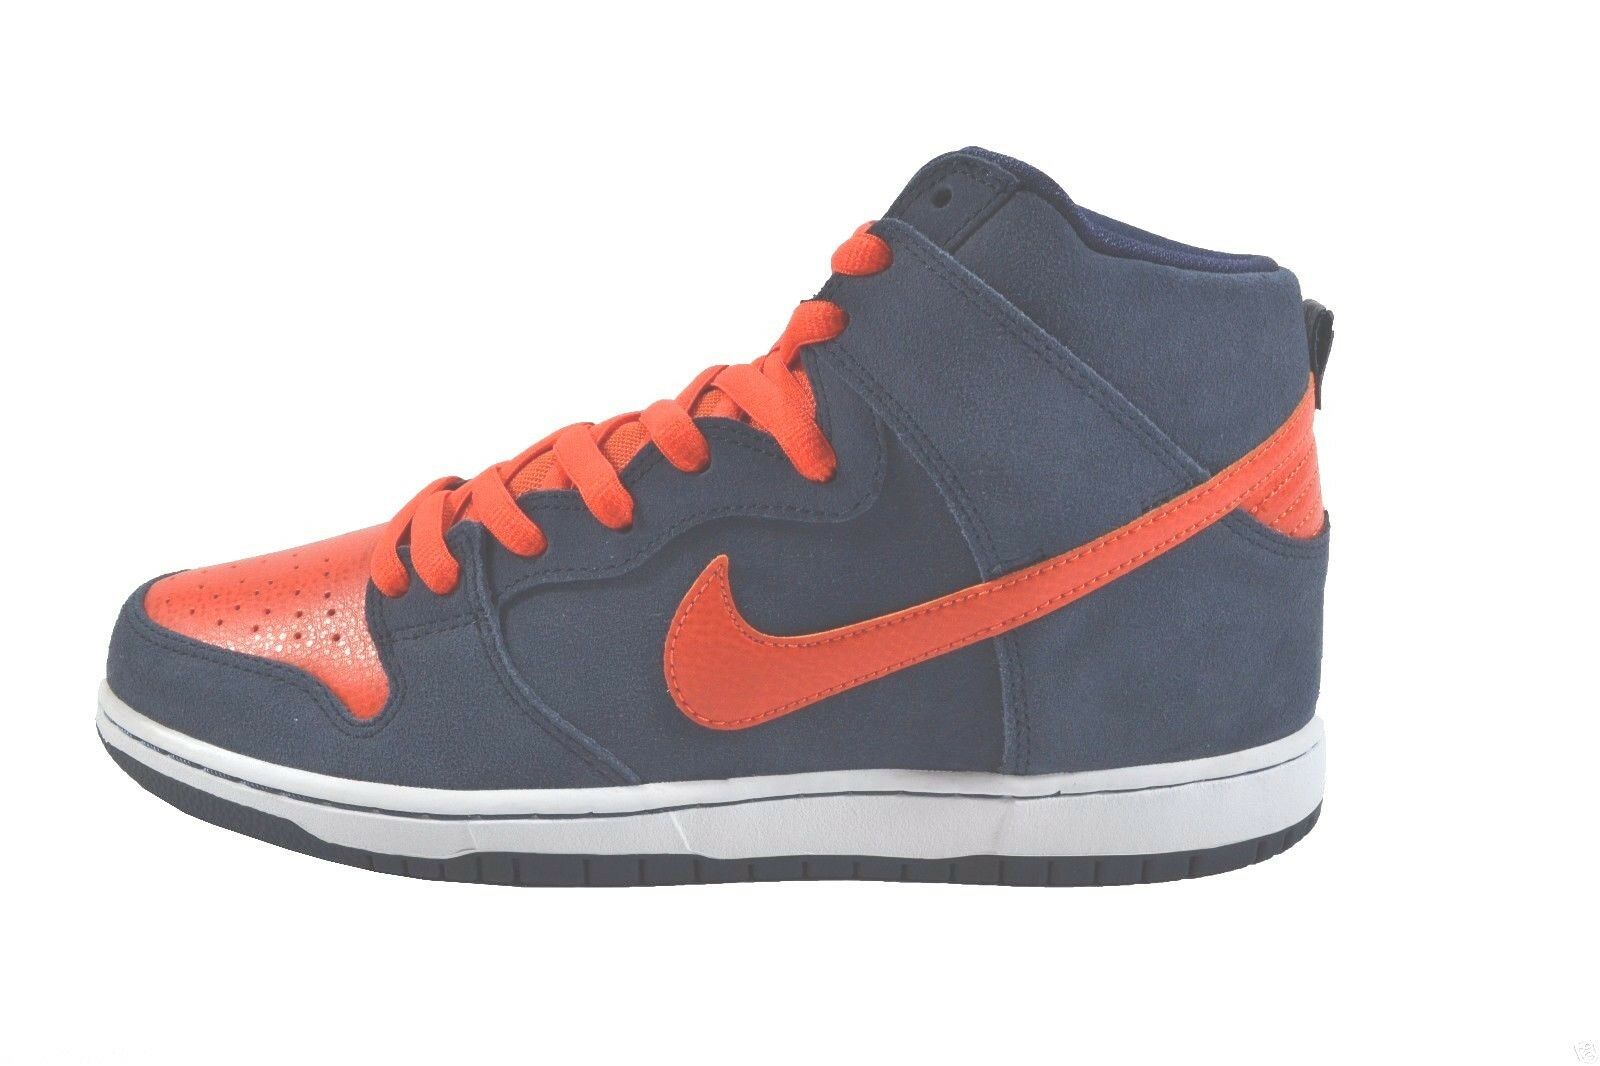 Nike DUNK HIGH PRO SB Obsidian Team Orange blanc Discounted (511) hommes Chaussures